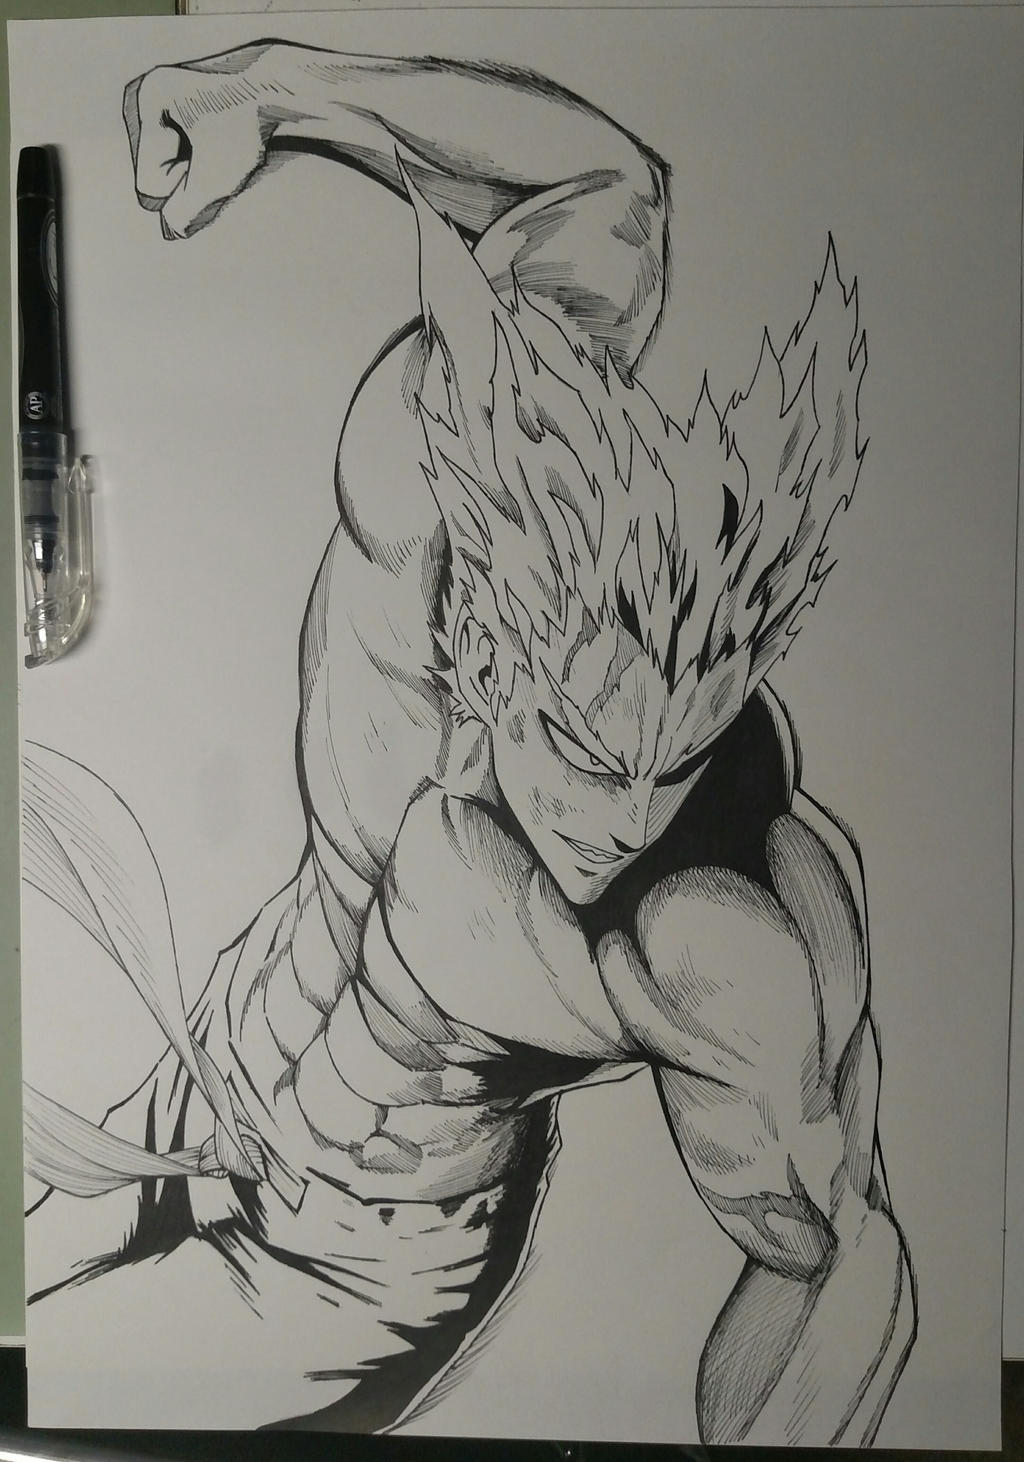 Hero Hunter One Punch Man Ink Drawing By Kaz Kirigiri On Deviantart